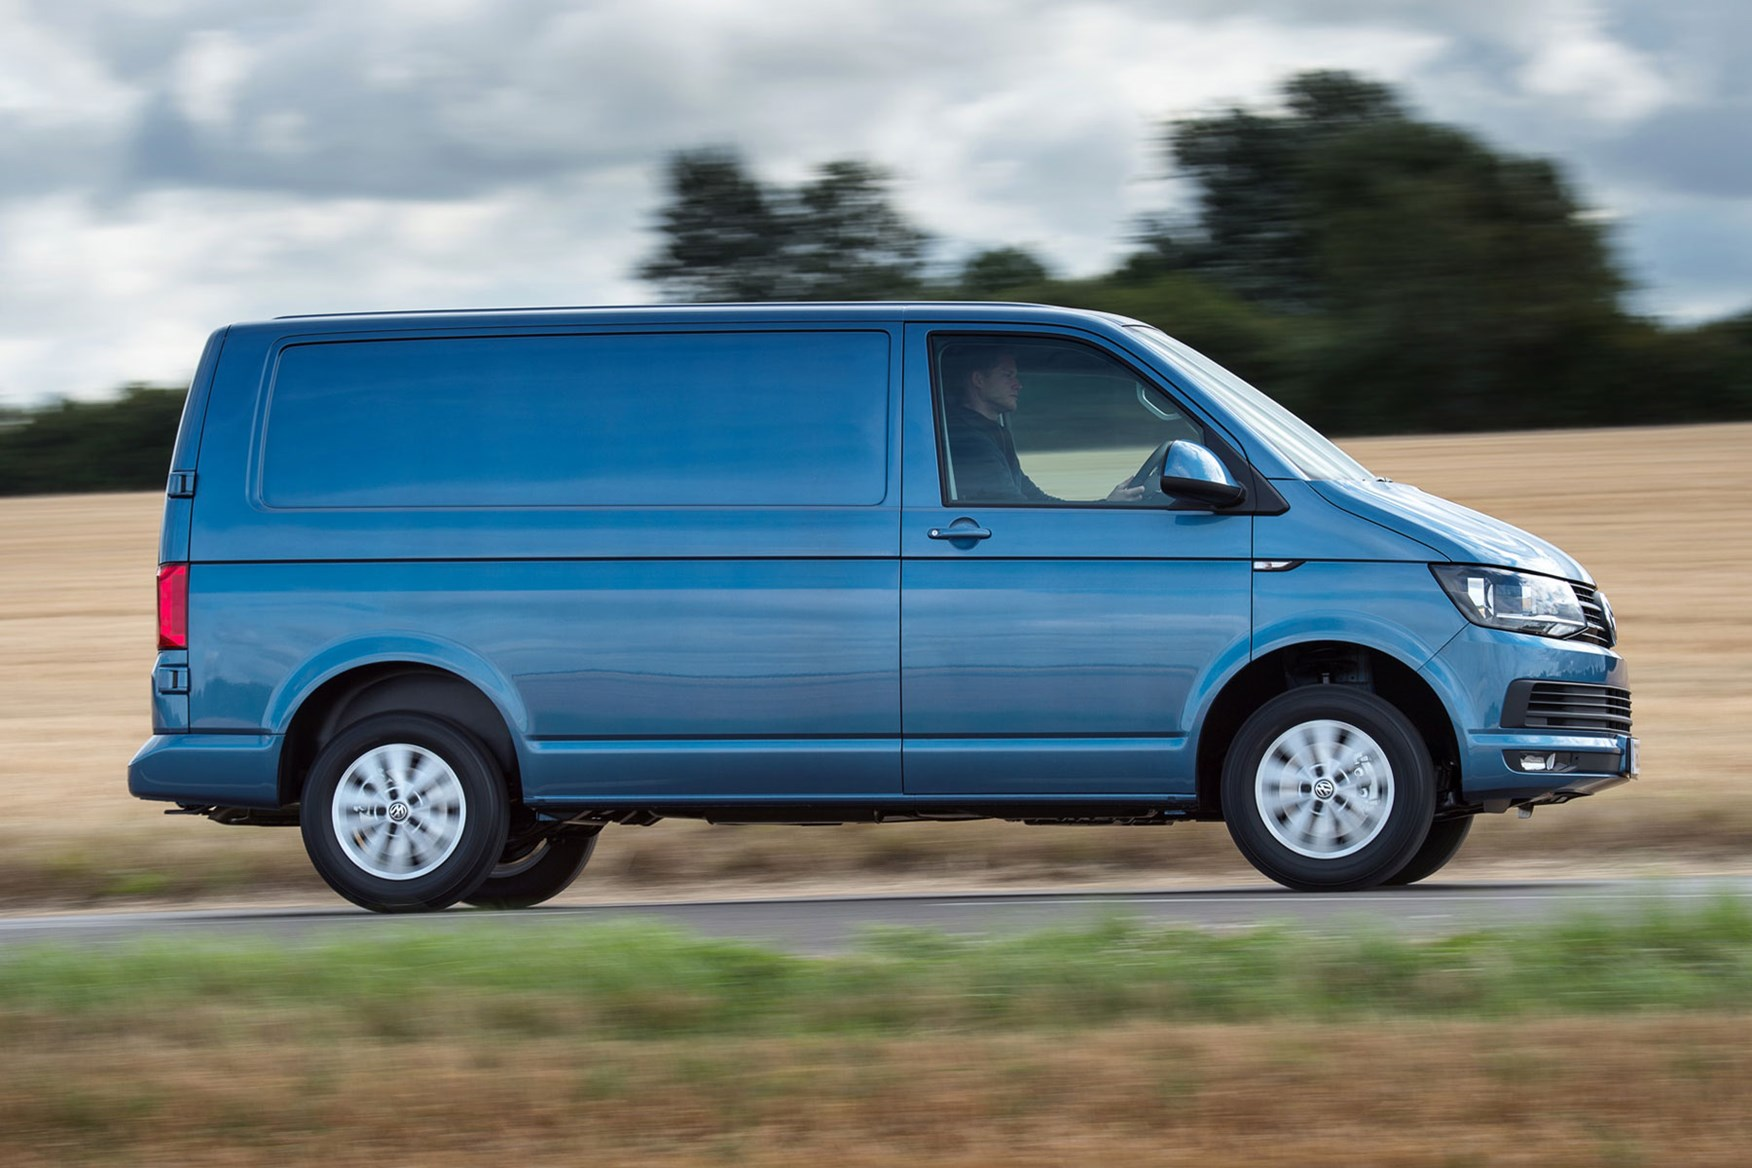 VW Transporter T6 SWB Low roof, driving, blue